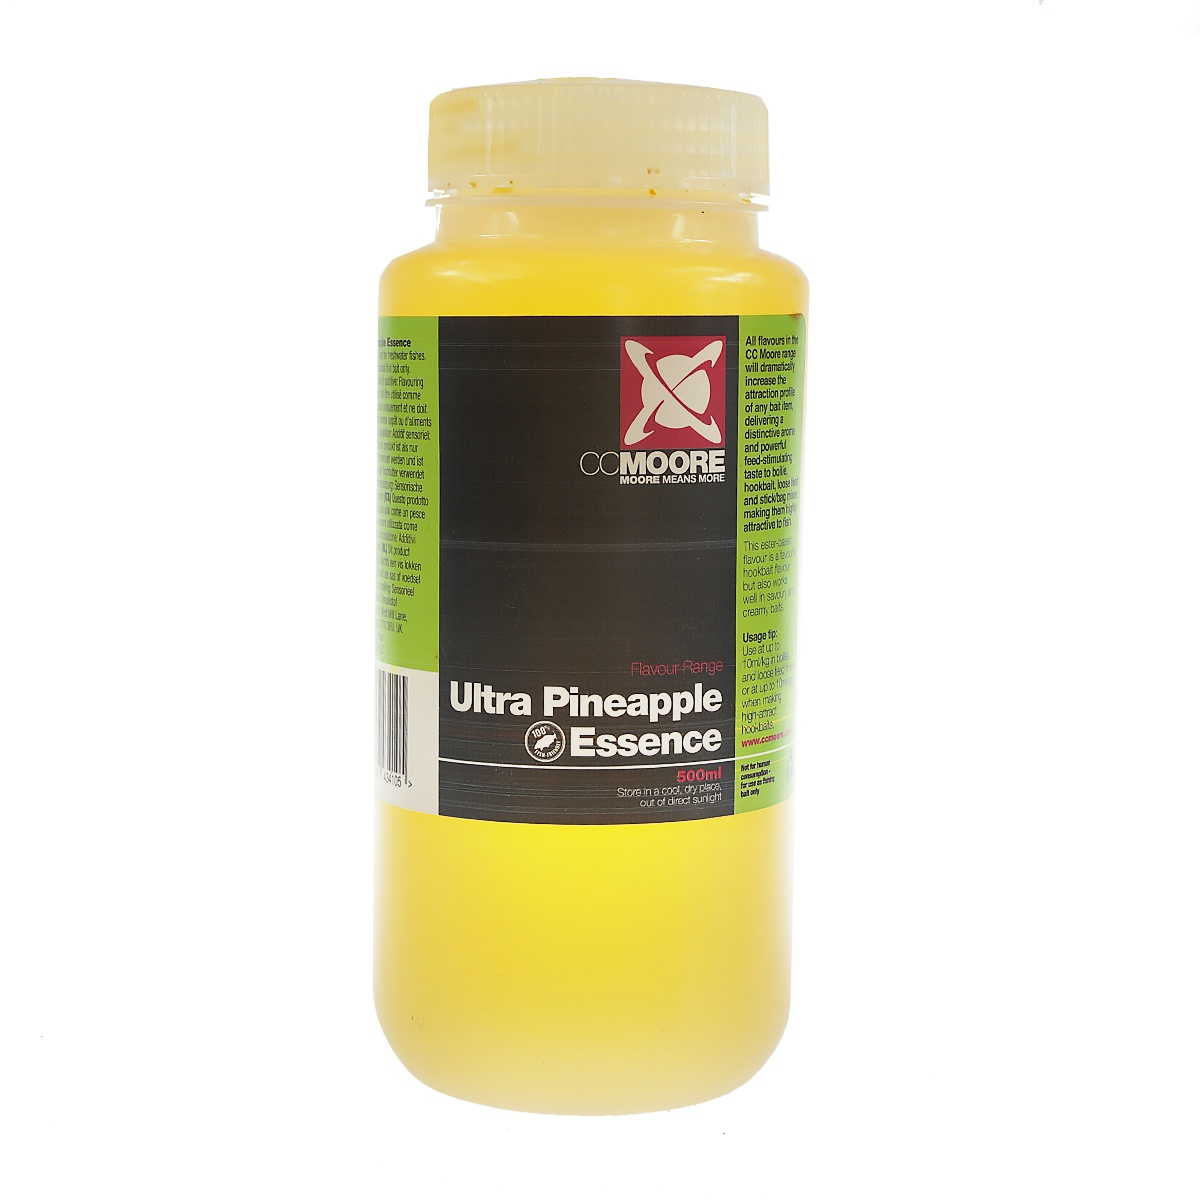 CcMoore Ultra Pineapple Essence 500 ml opakowanie